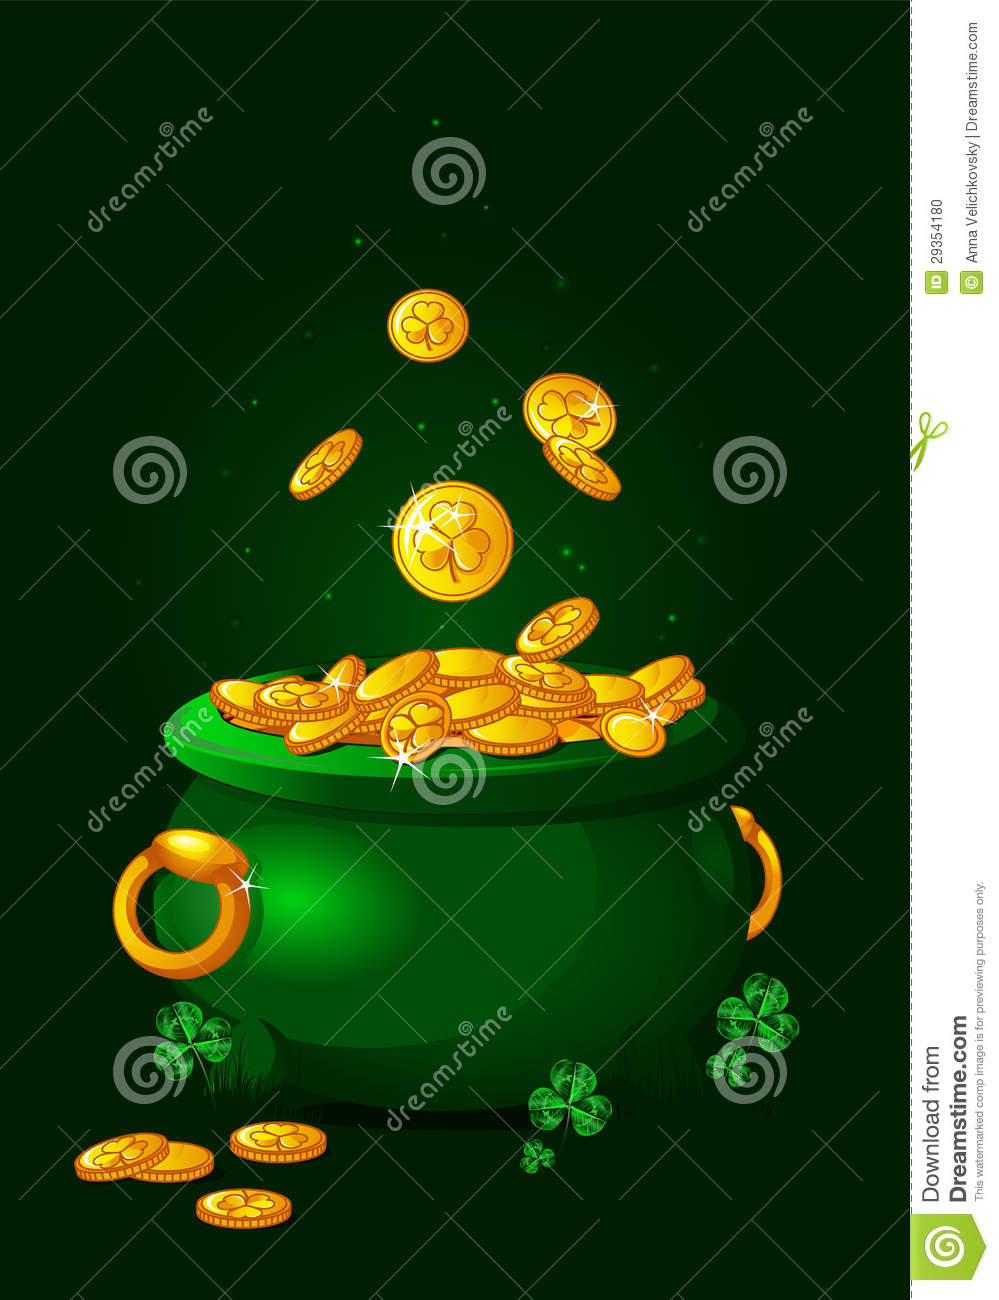 Pot of gold background stock vector. Image of illustration ...